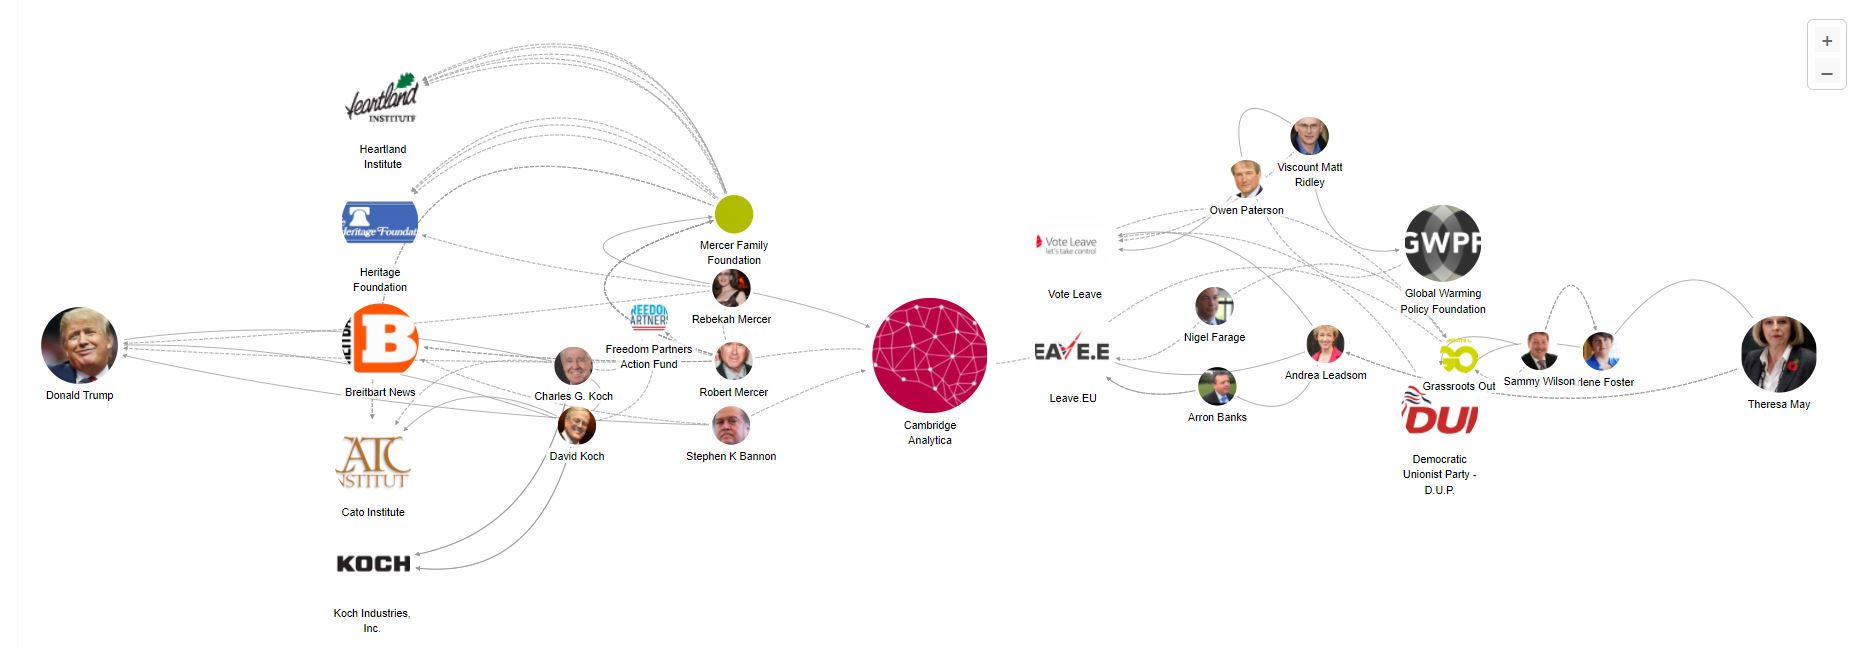 Map of Cambridge Analytica and web of climate science denial